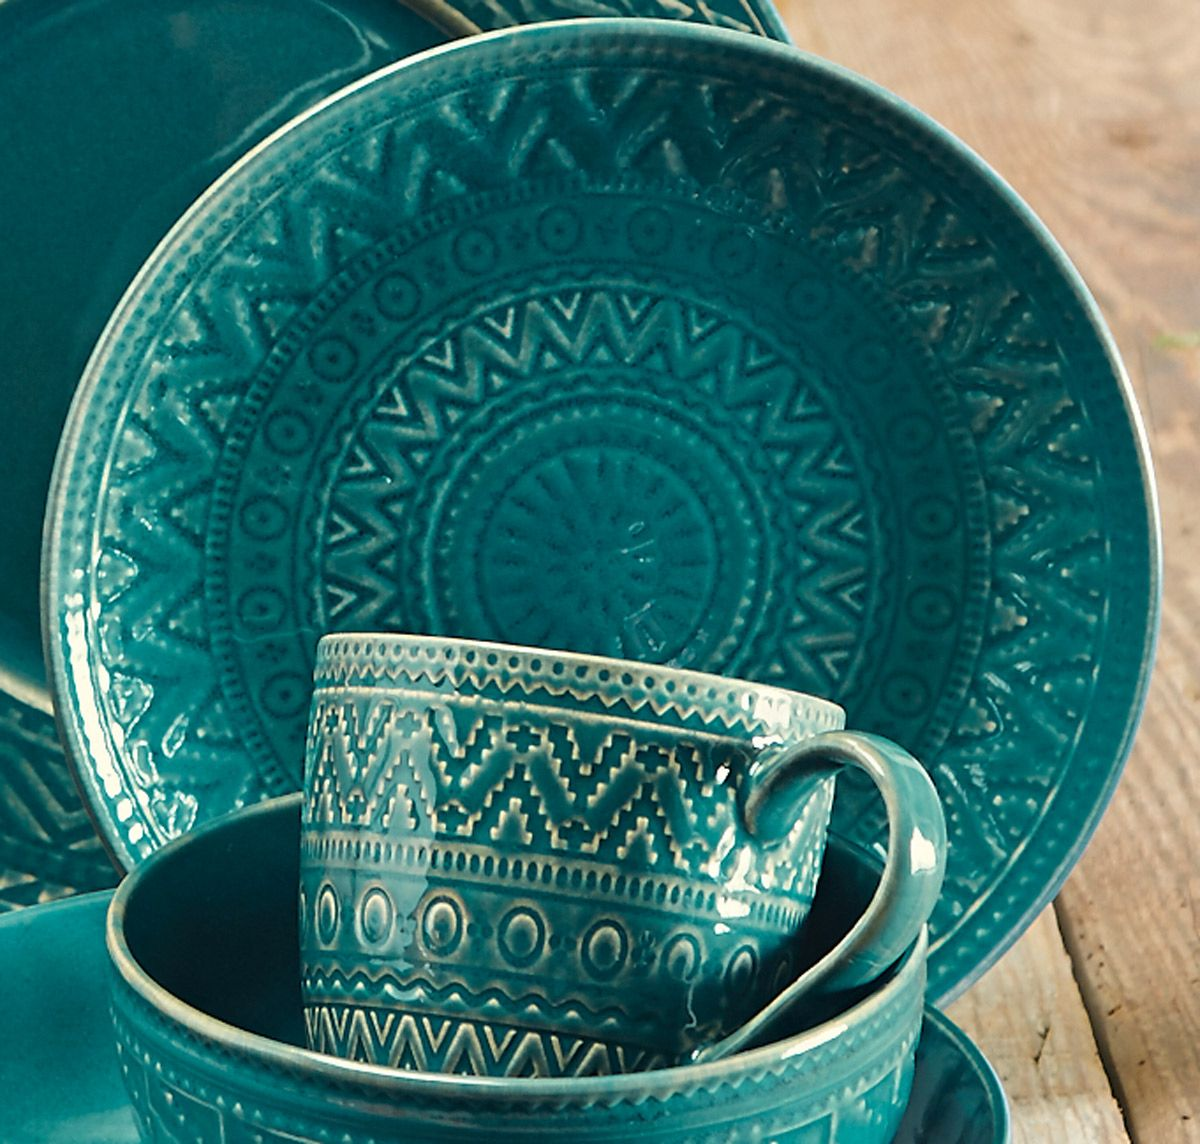 Sedona Sunrise Teal Salad Plate